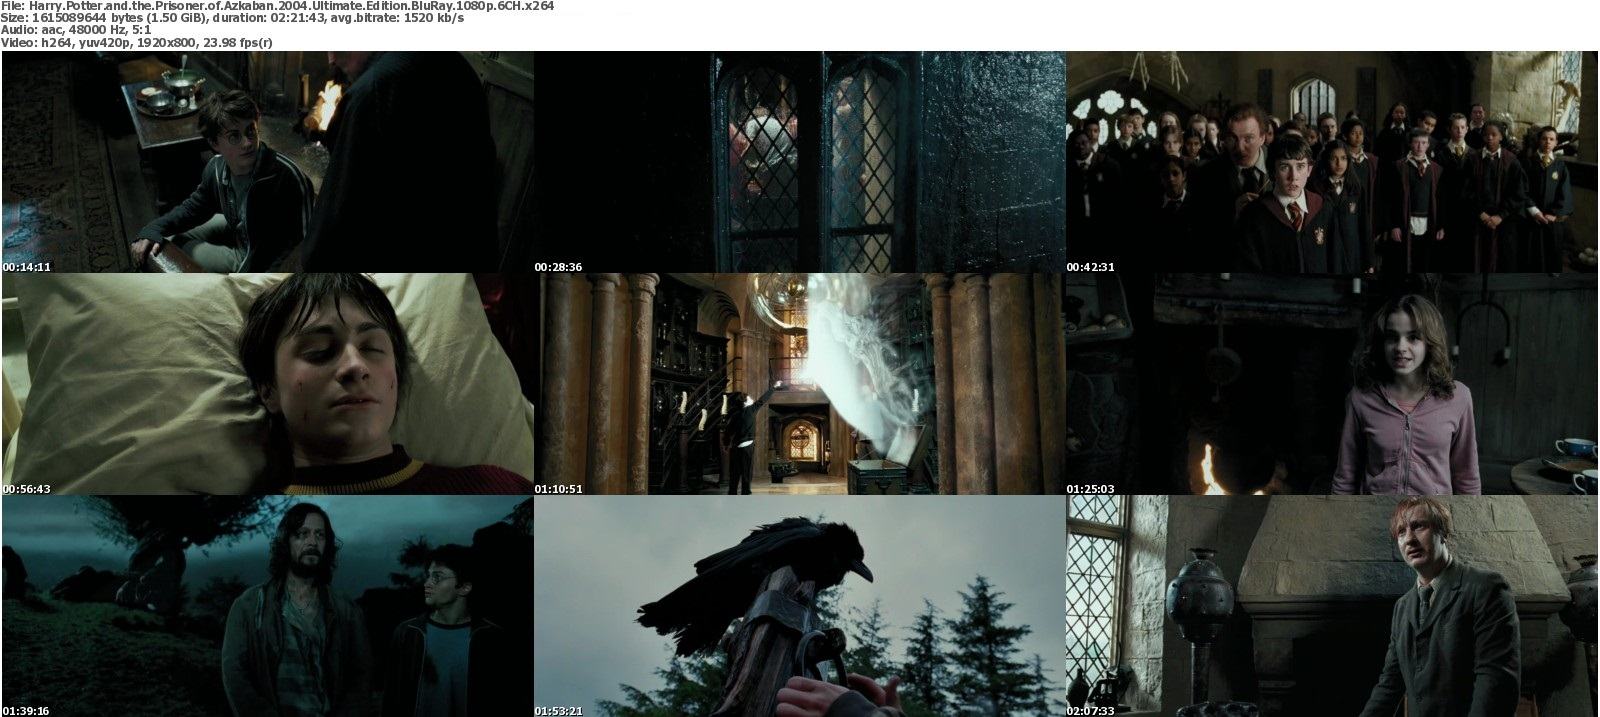 Harry Potter Extended Edition